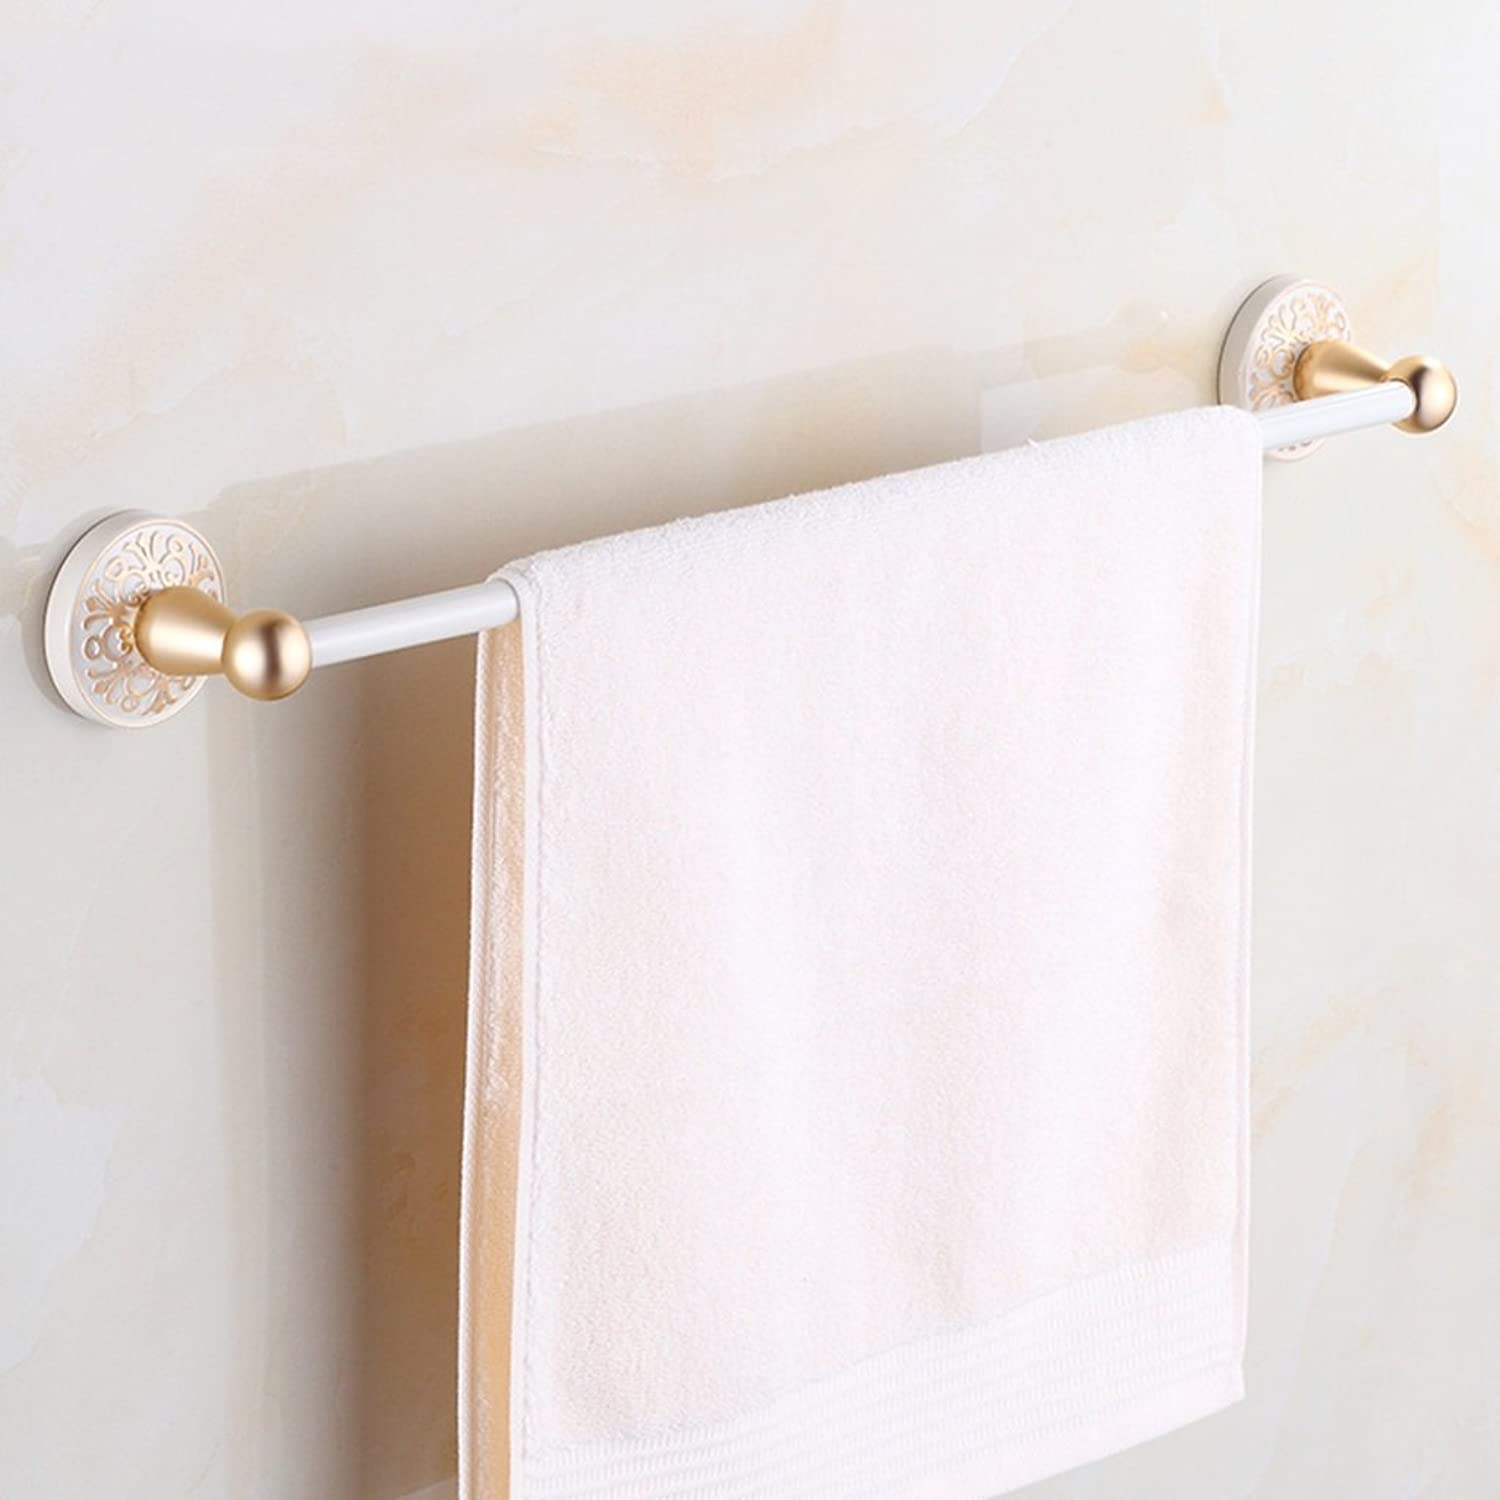 Gweat European-Style Aluminum-Magnesium Alloy Towel Bar Wall Mounted Bathroom Fittings Towel Rack, Champagne gold (color   B)